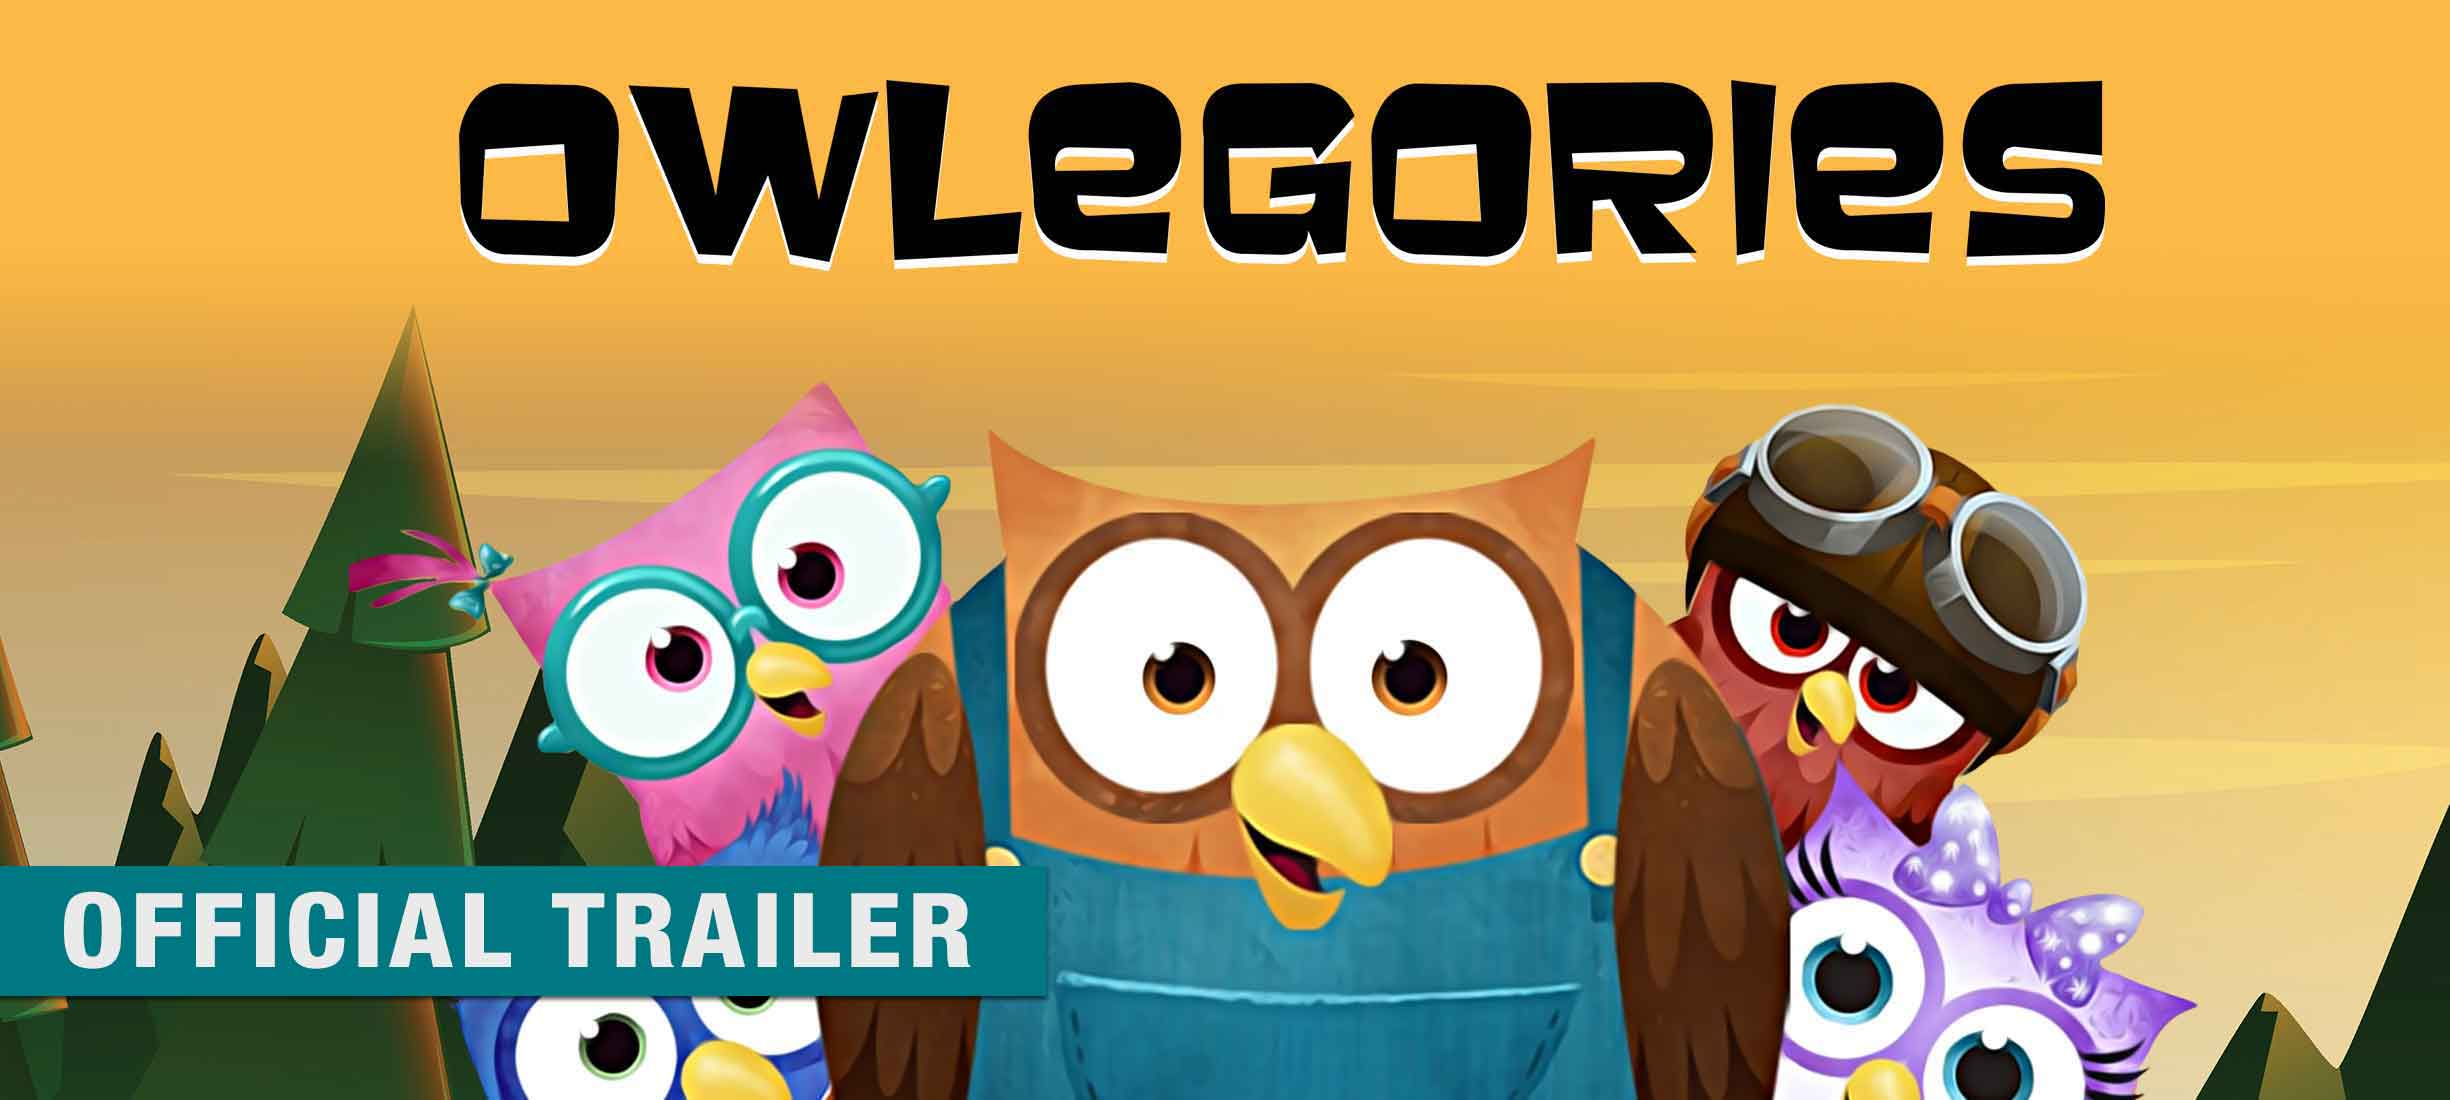 Owlegories: Trailer